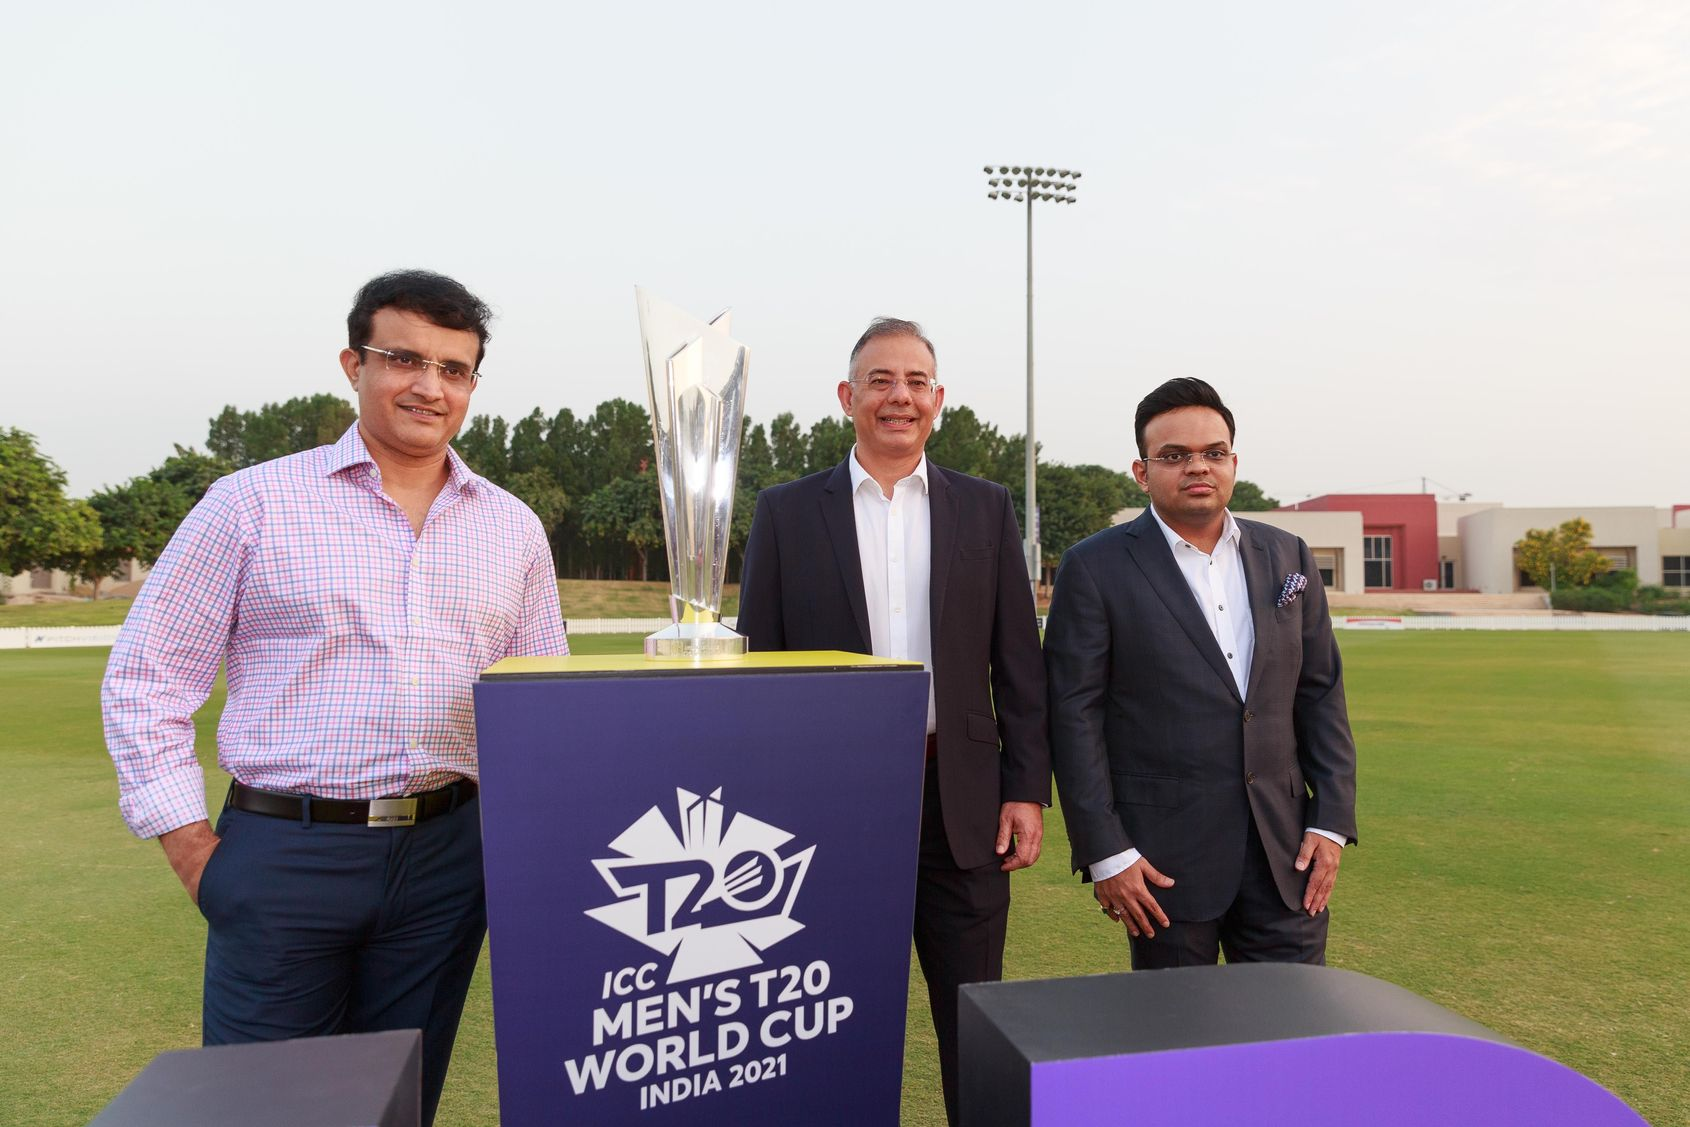 countdown to ICC Men's T20 World Cup 2021